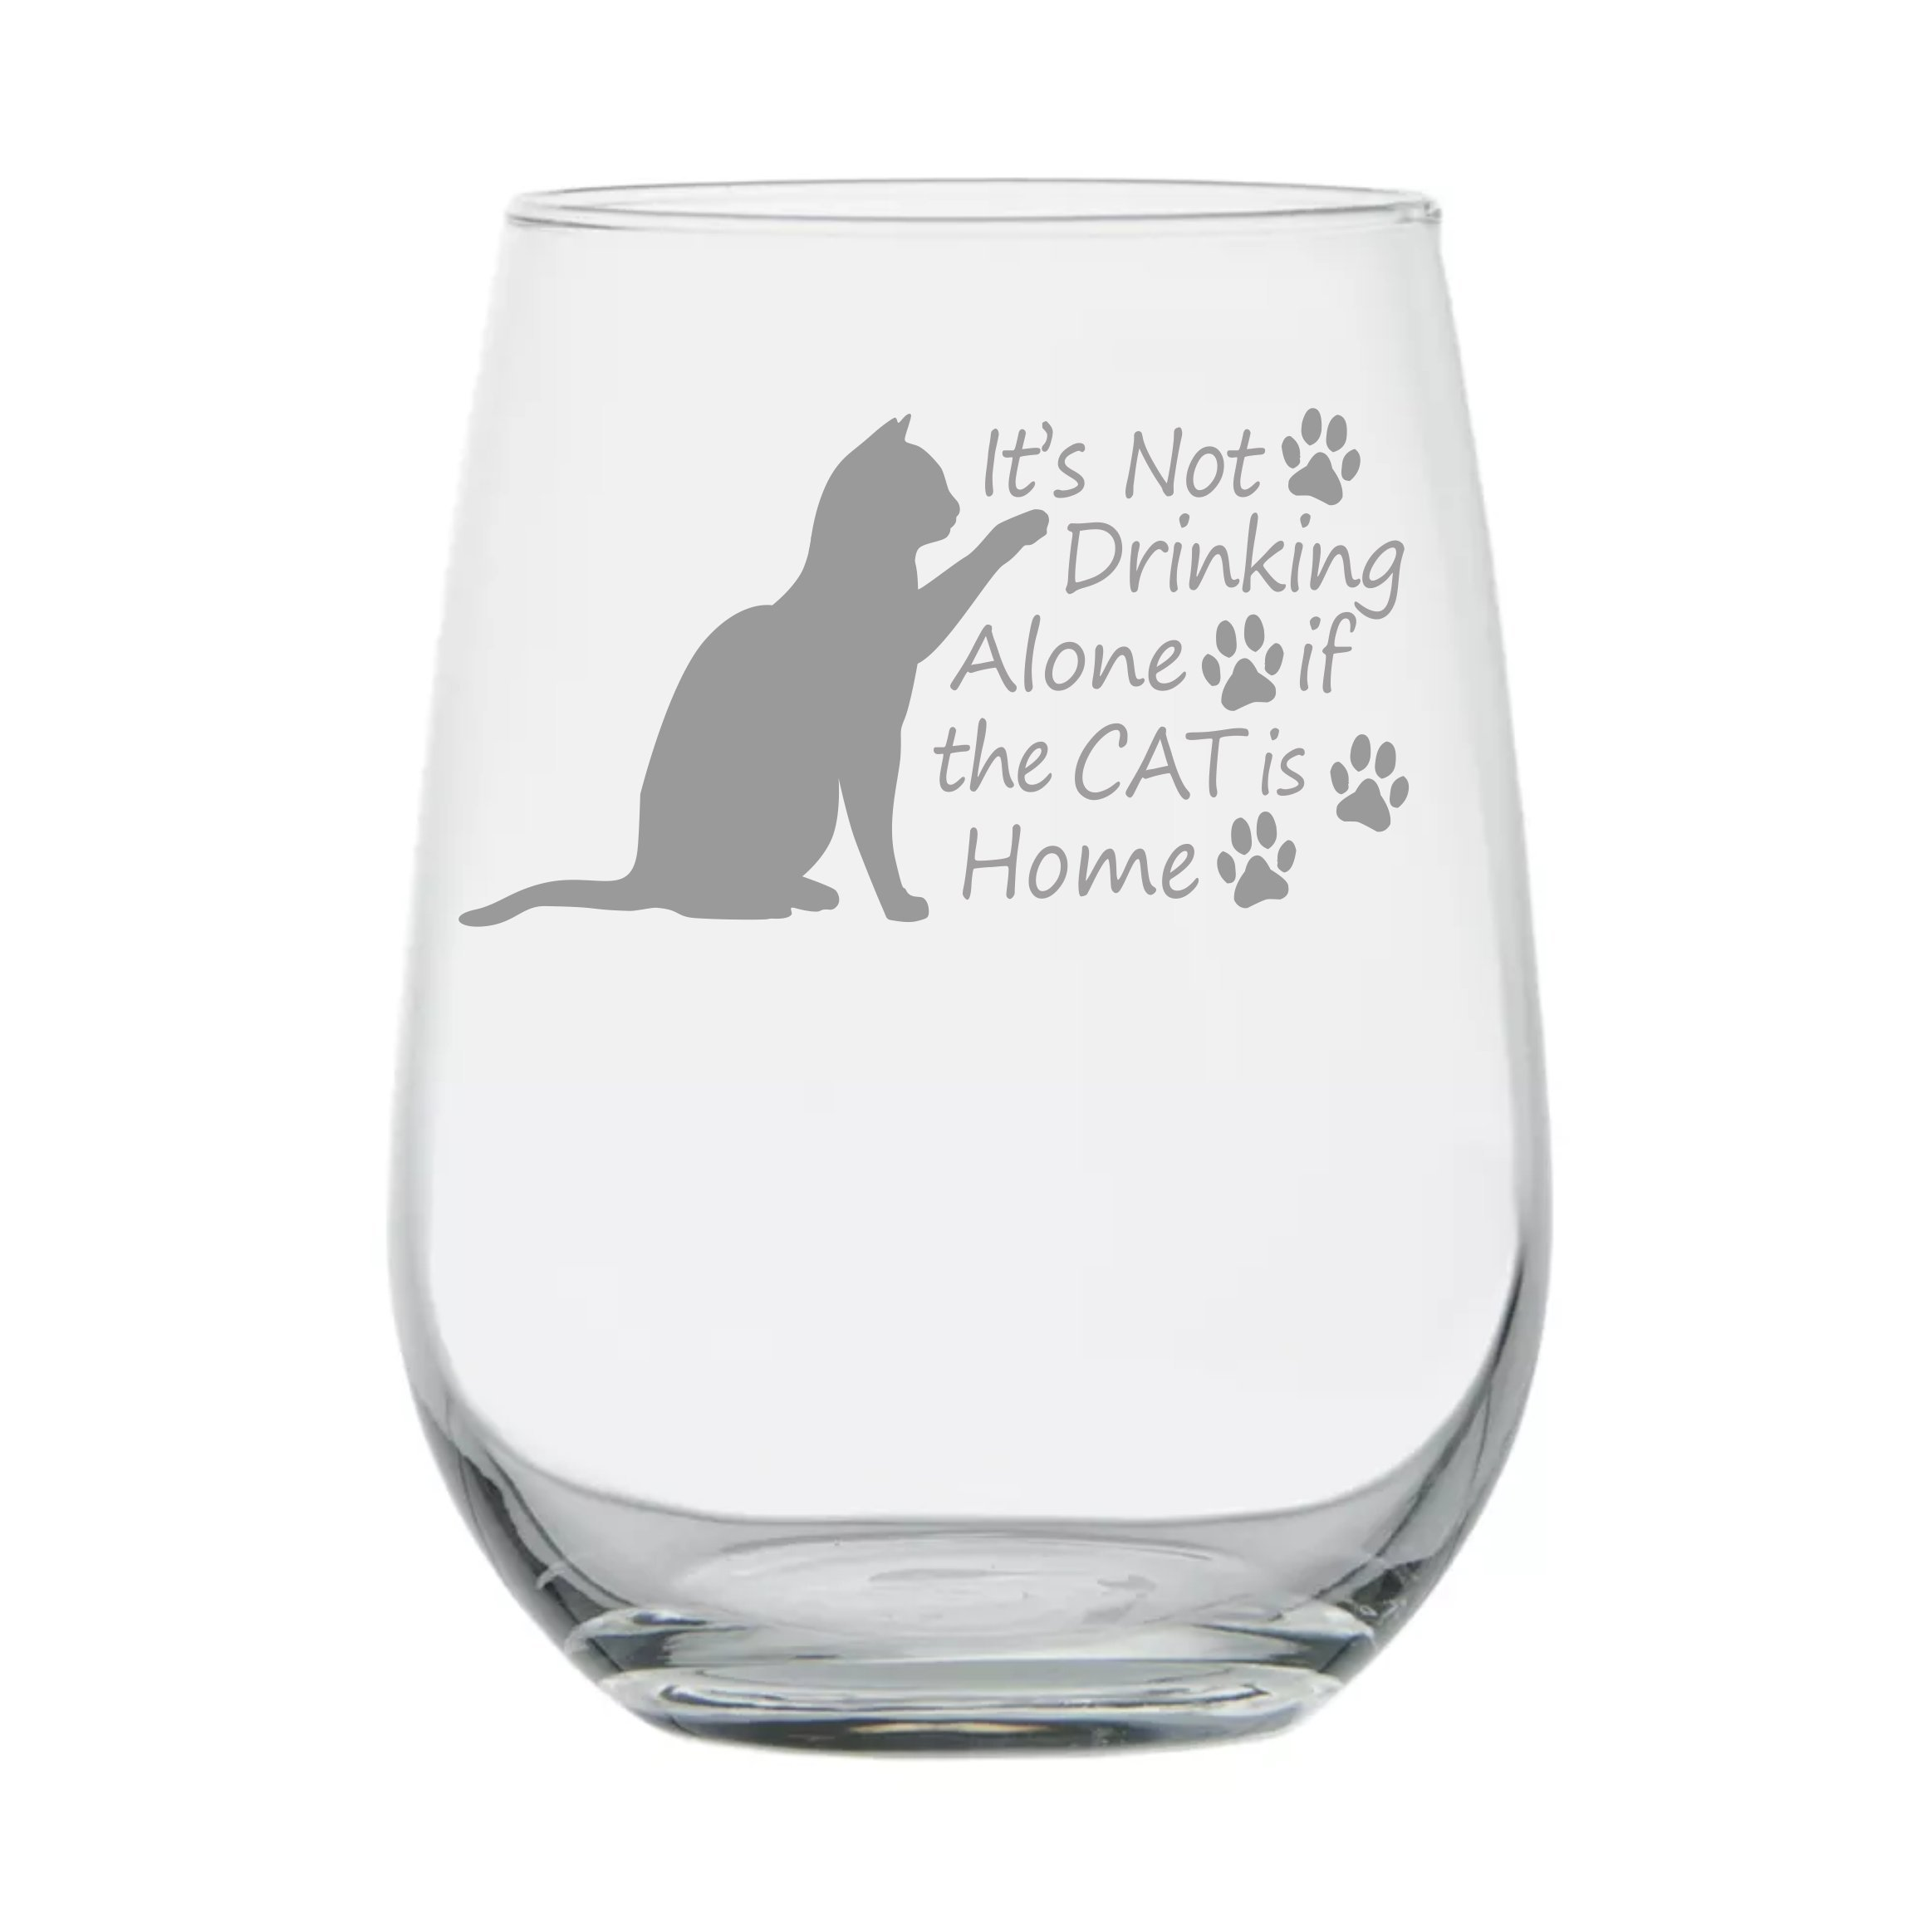 Cat Lover Gifts ★ It's Not Drinking Alone If The Cat Is Home ★ 17 oz Dishwasher Safe ★ Wine Gifts ★ Crazy Cat Lady ★ Gift for Women ★ Mom ★ Birthday Glass ★ Funny ★ Couples Anniversary ★ Cat Rescue